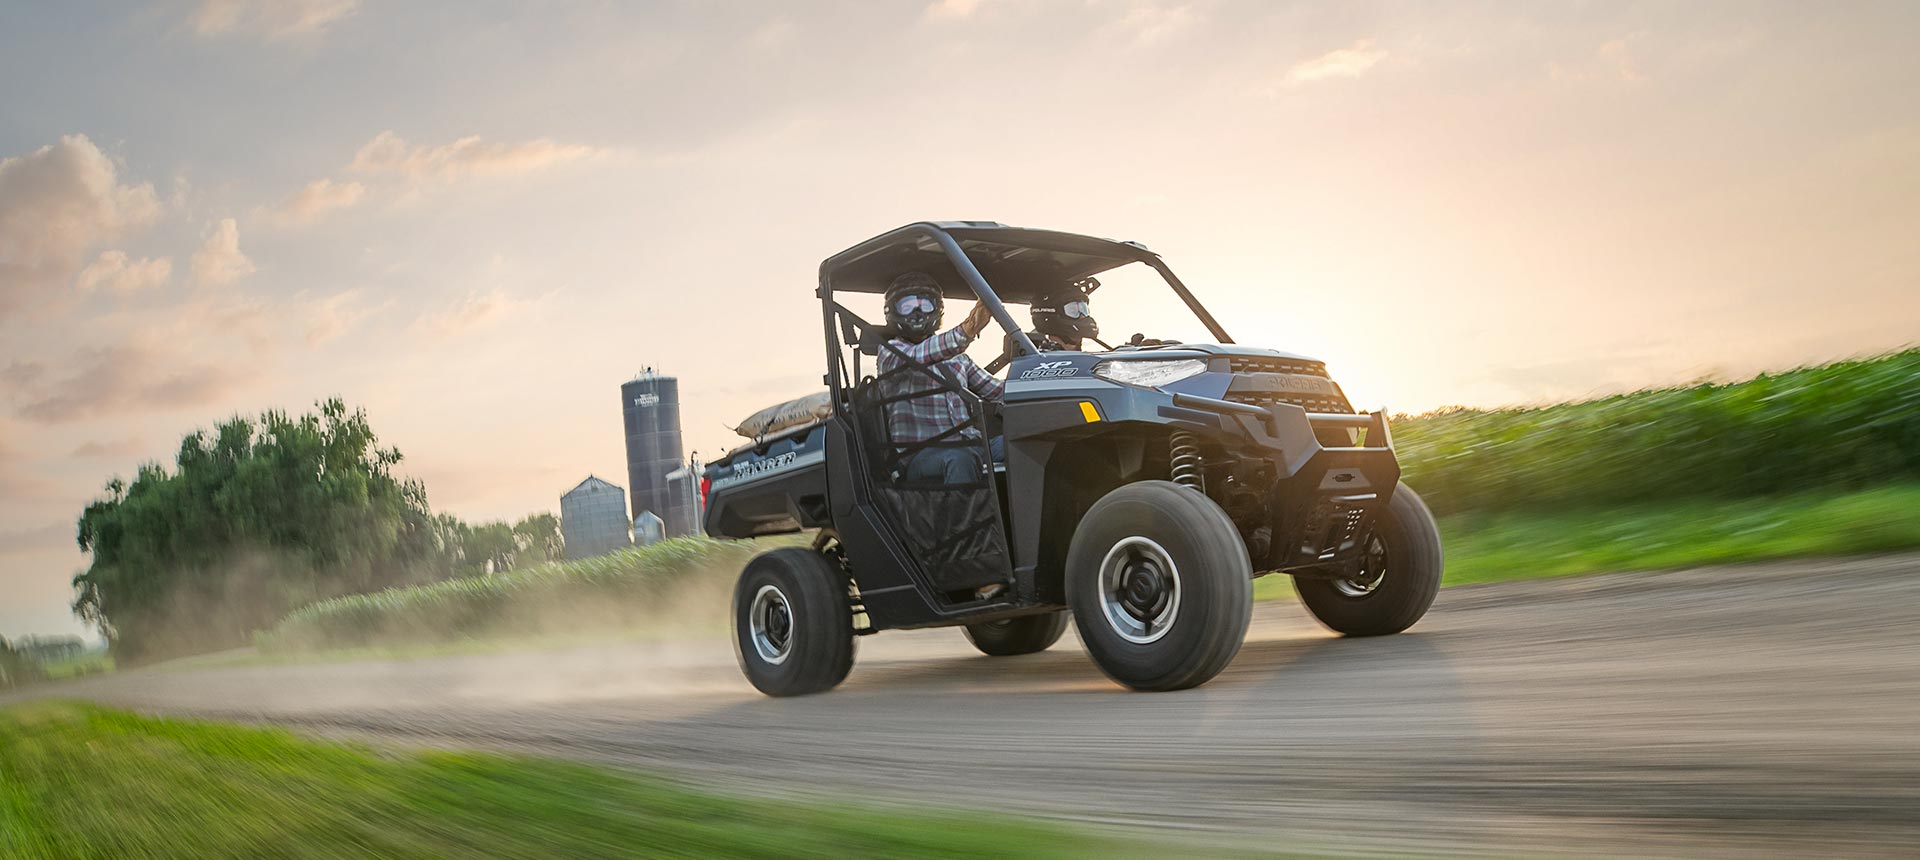 2019 Polaris Ranger XP 1000 EPS in Three Lakes, Wisconsin - Photo 11